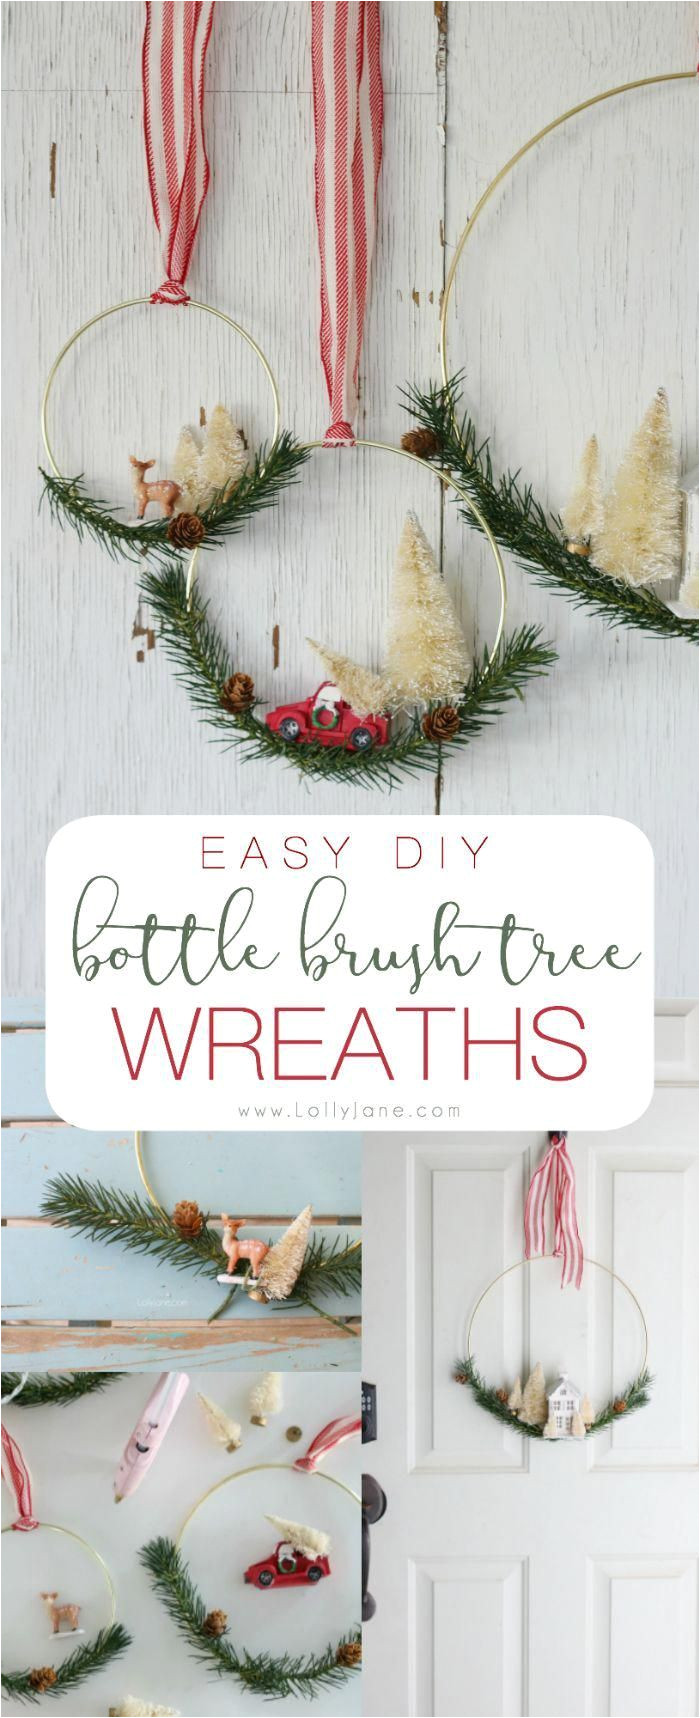 easy diy bottle brush tree wreaths perfect to display at christmas time so cute easy to make in less than an hour christmasdecorationsdiy